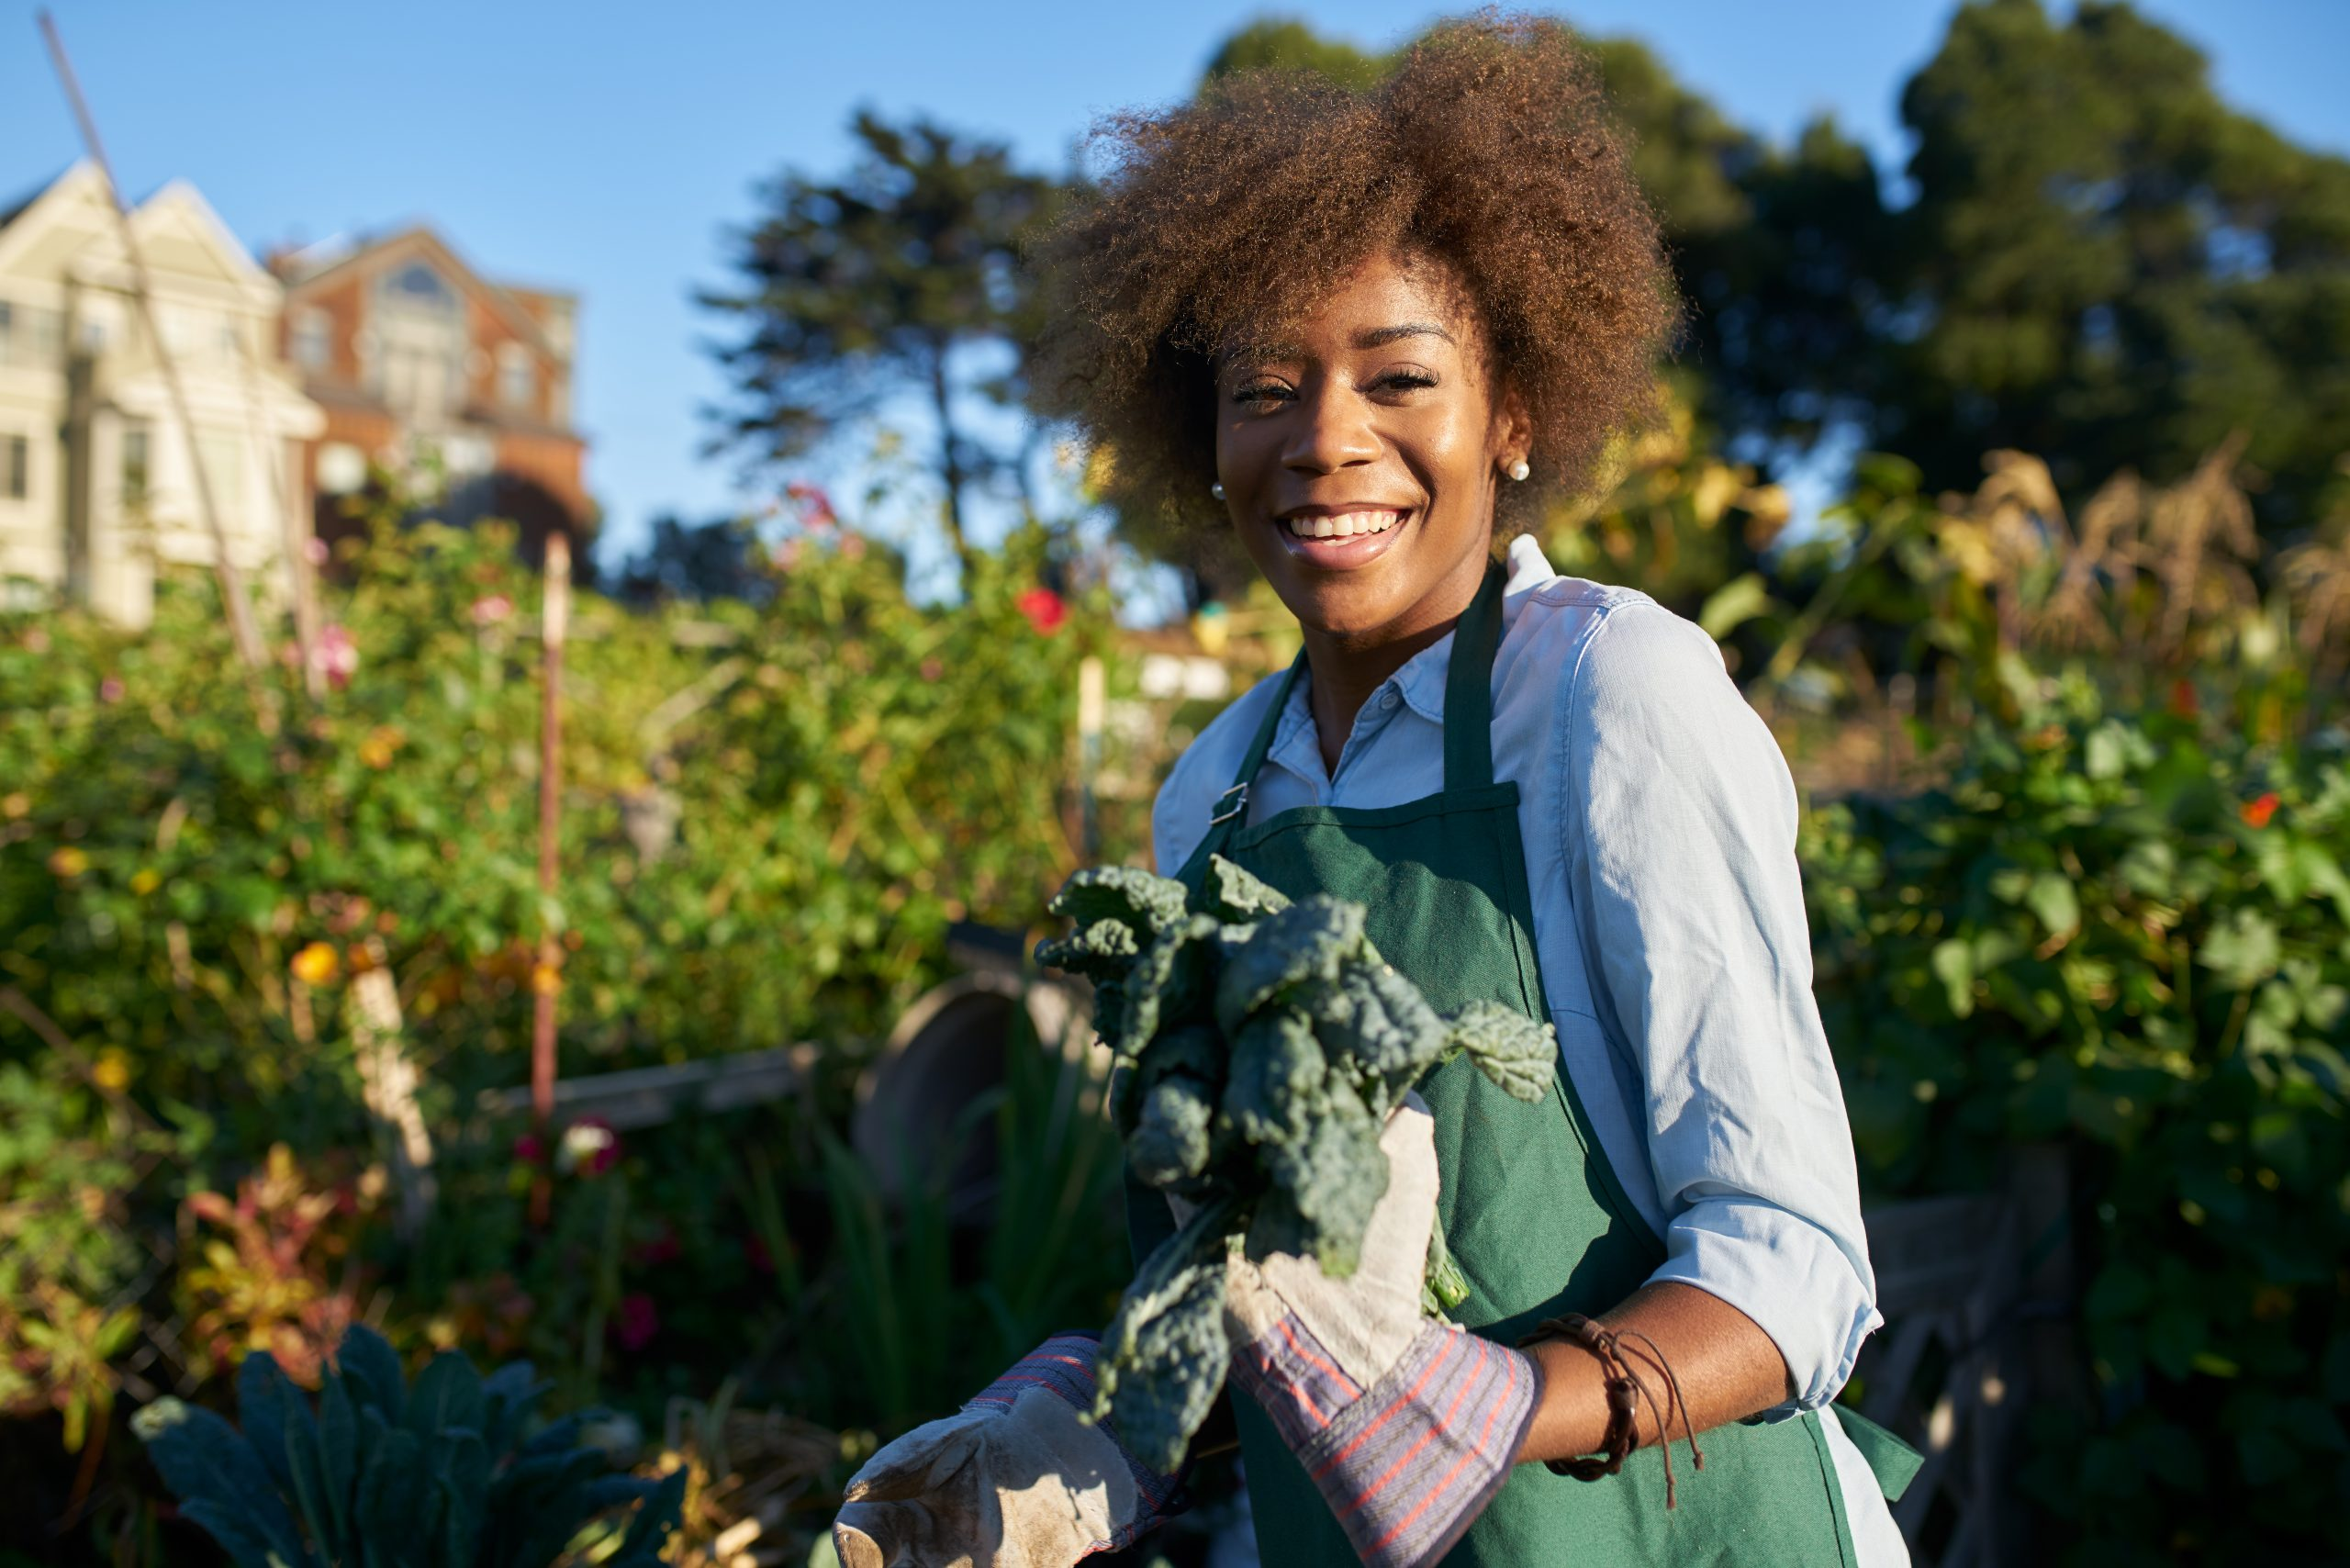 Woman holding freshly picked kale at urban community garden.